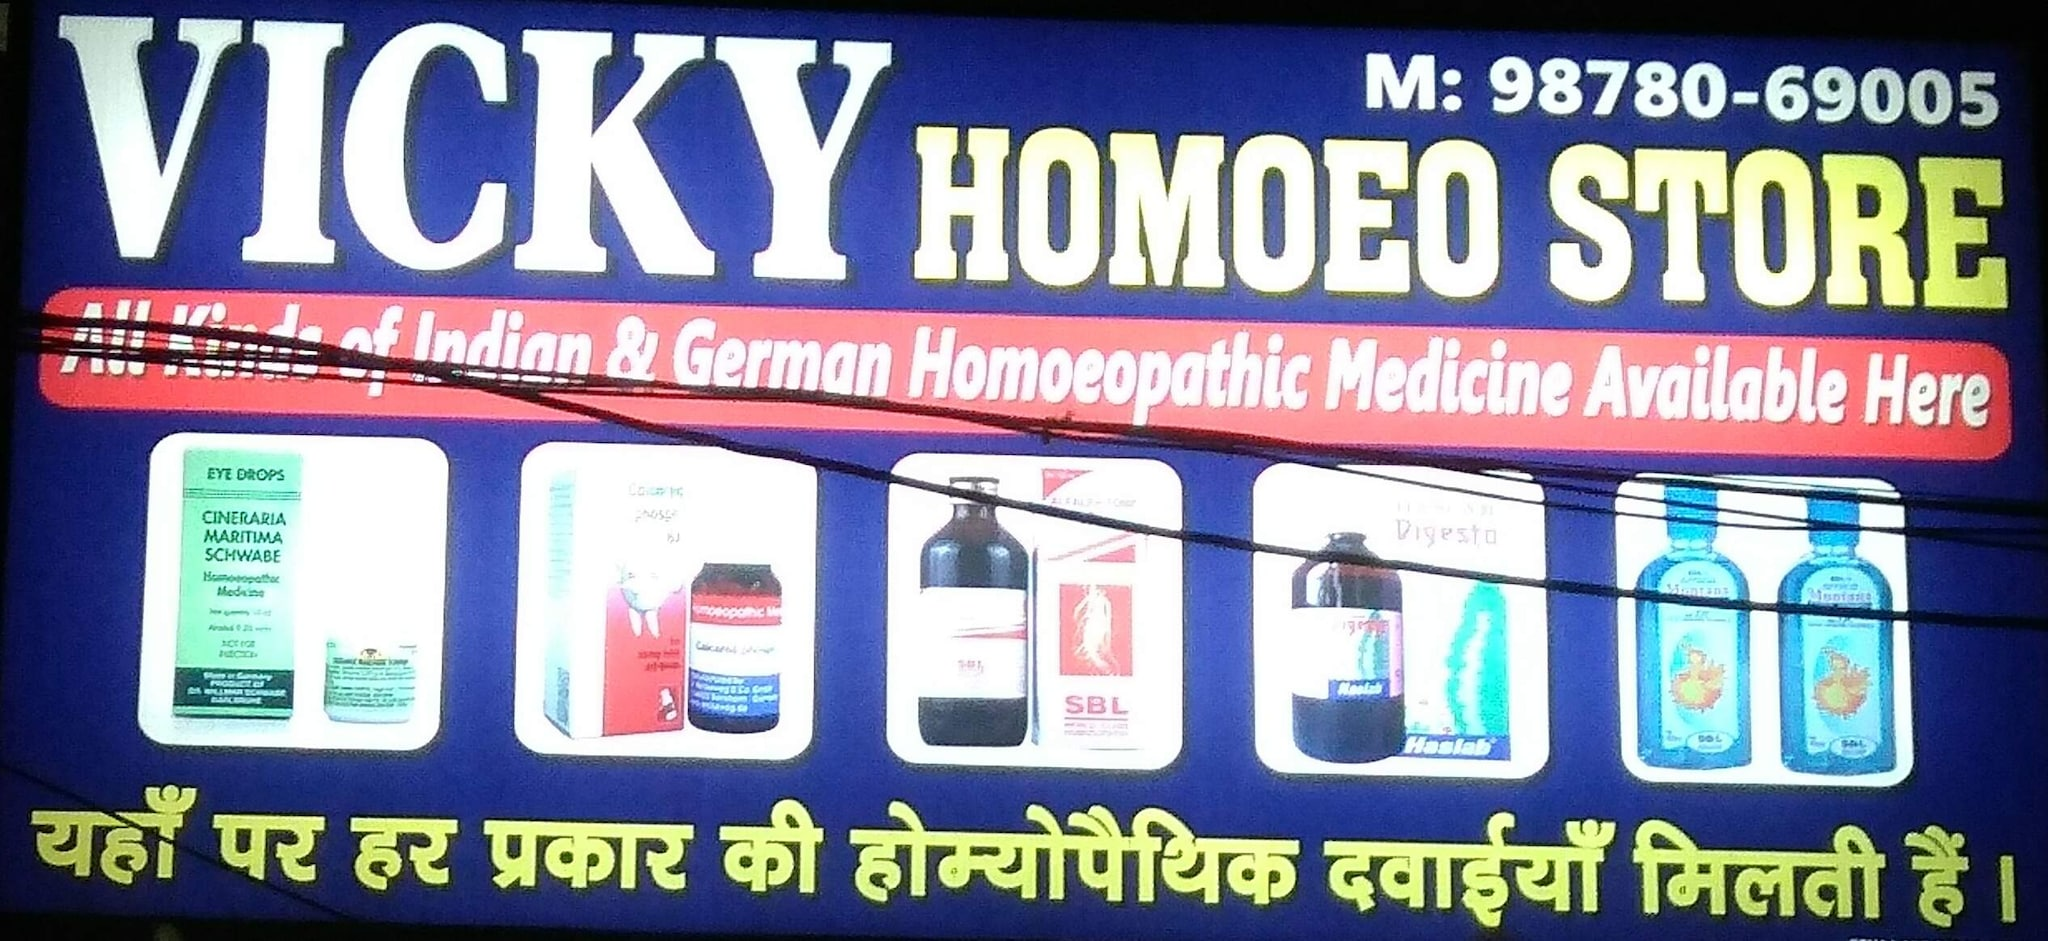 Top 100 Homeopathic Medicine Retailers in Ludhiana - Best